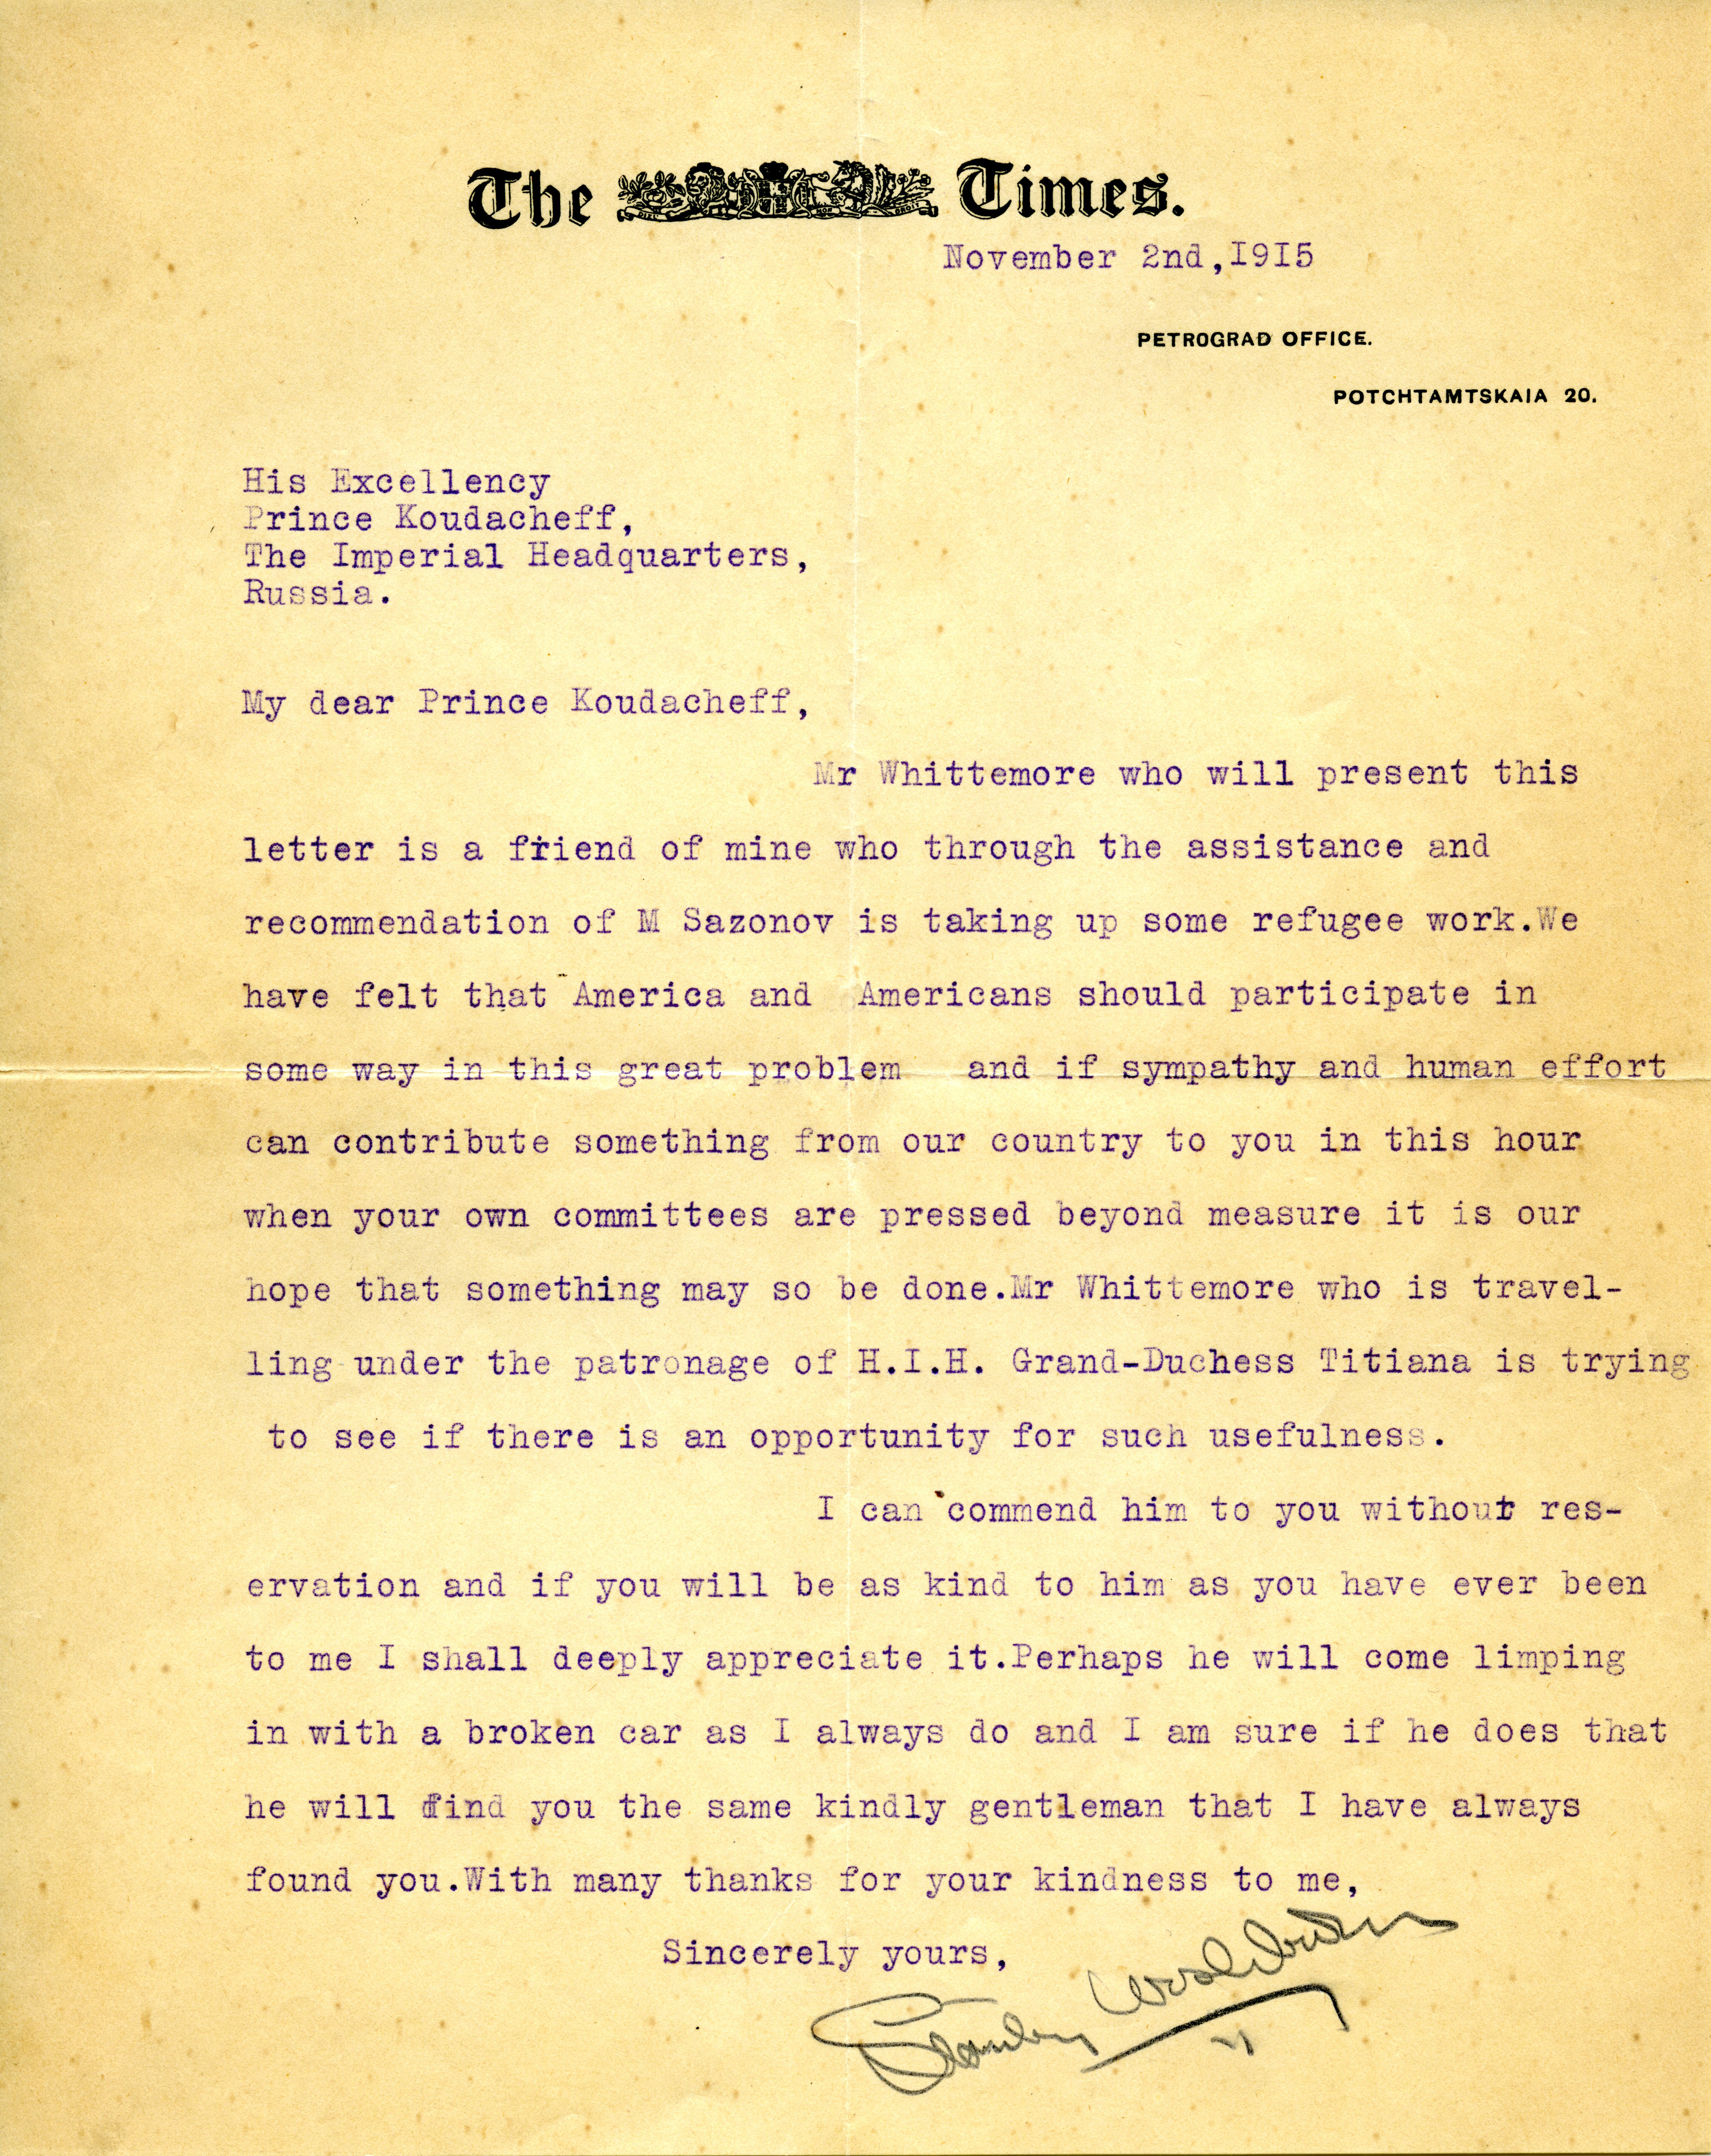 Letter introducing Thomas Whittemore to Prince Koudacheff of Russia, November 1915